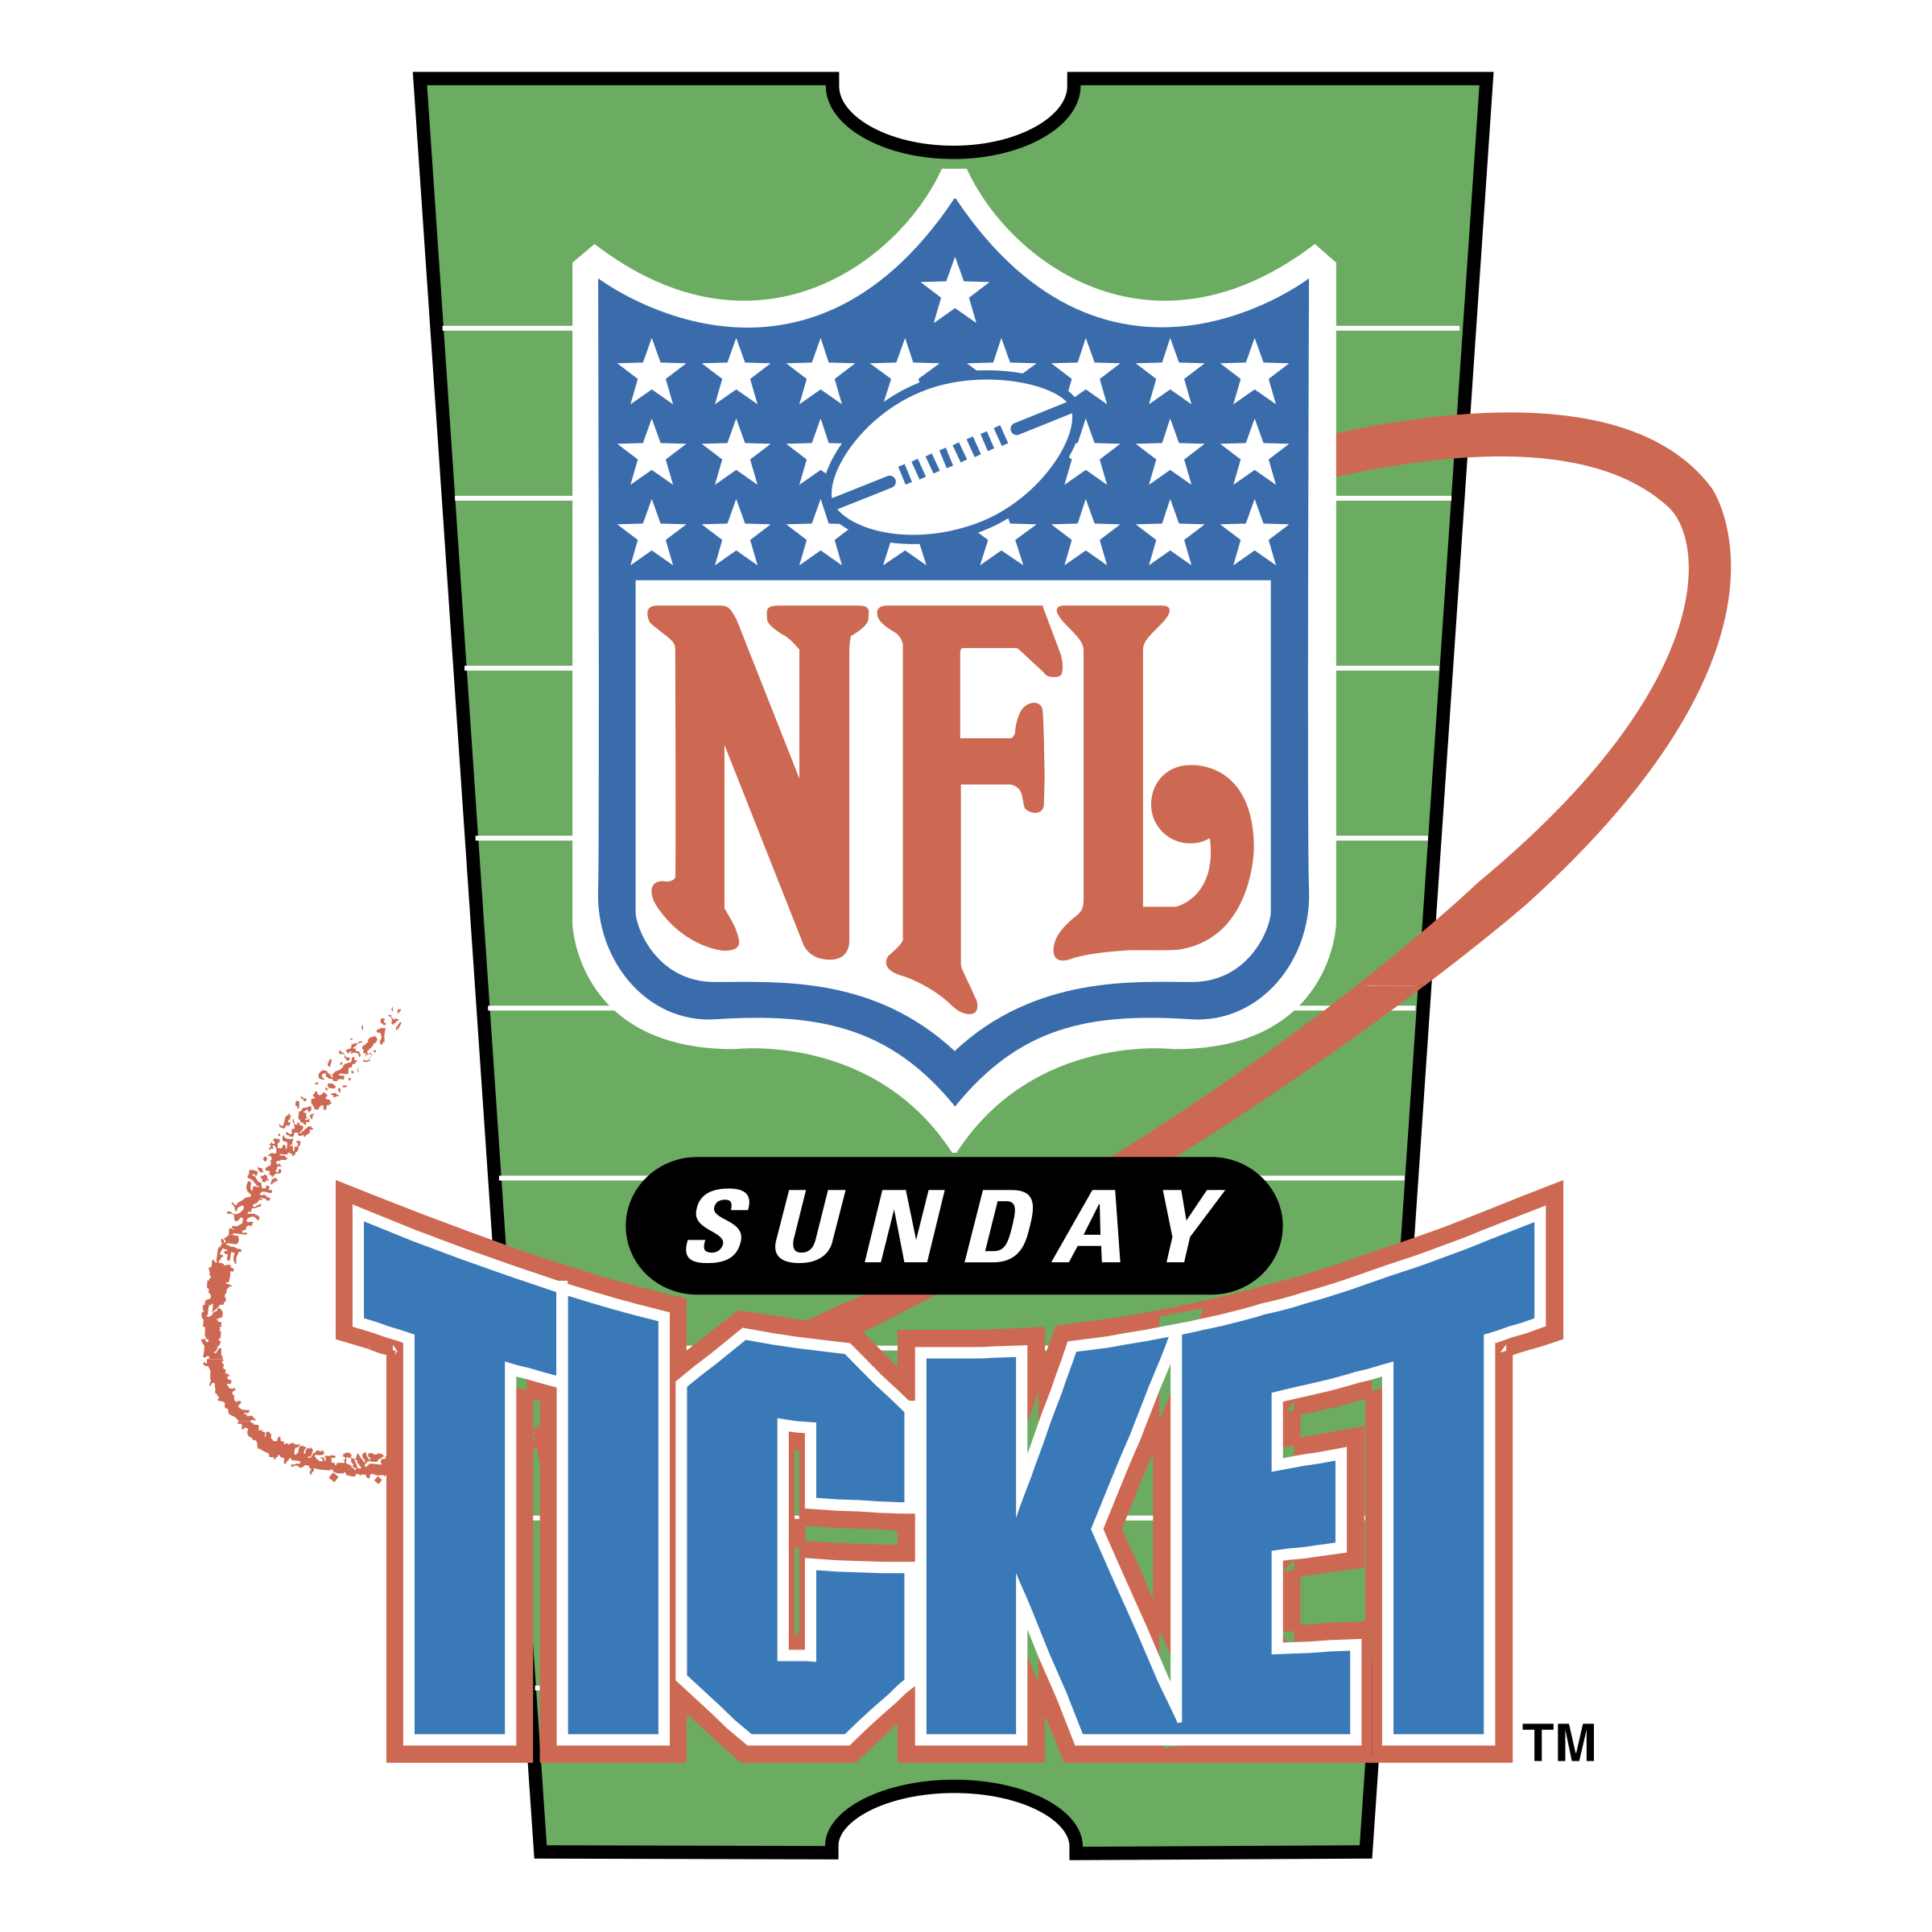 Sunday ticket logo png. Nfl transparent svg vector